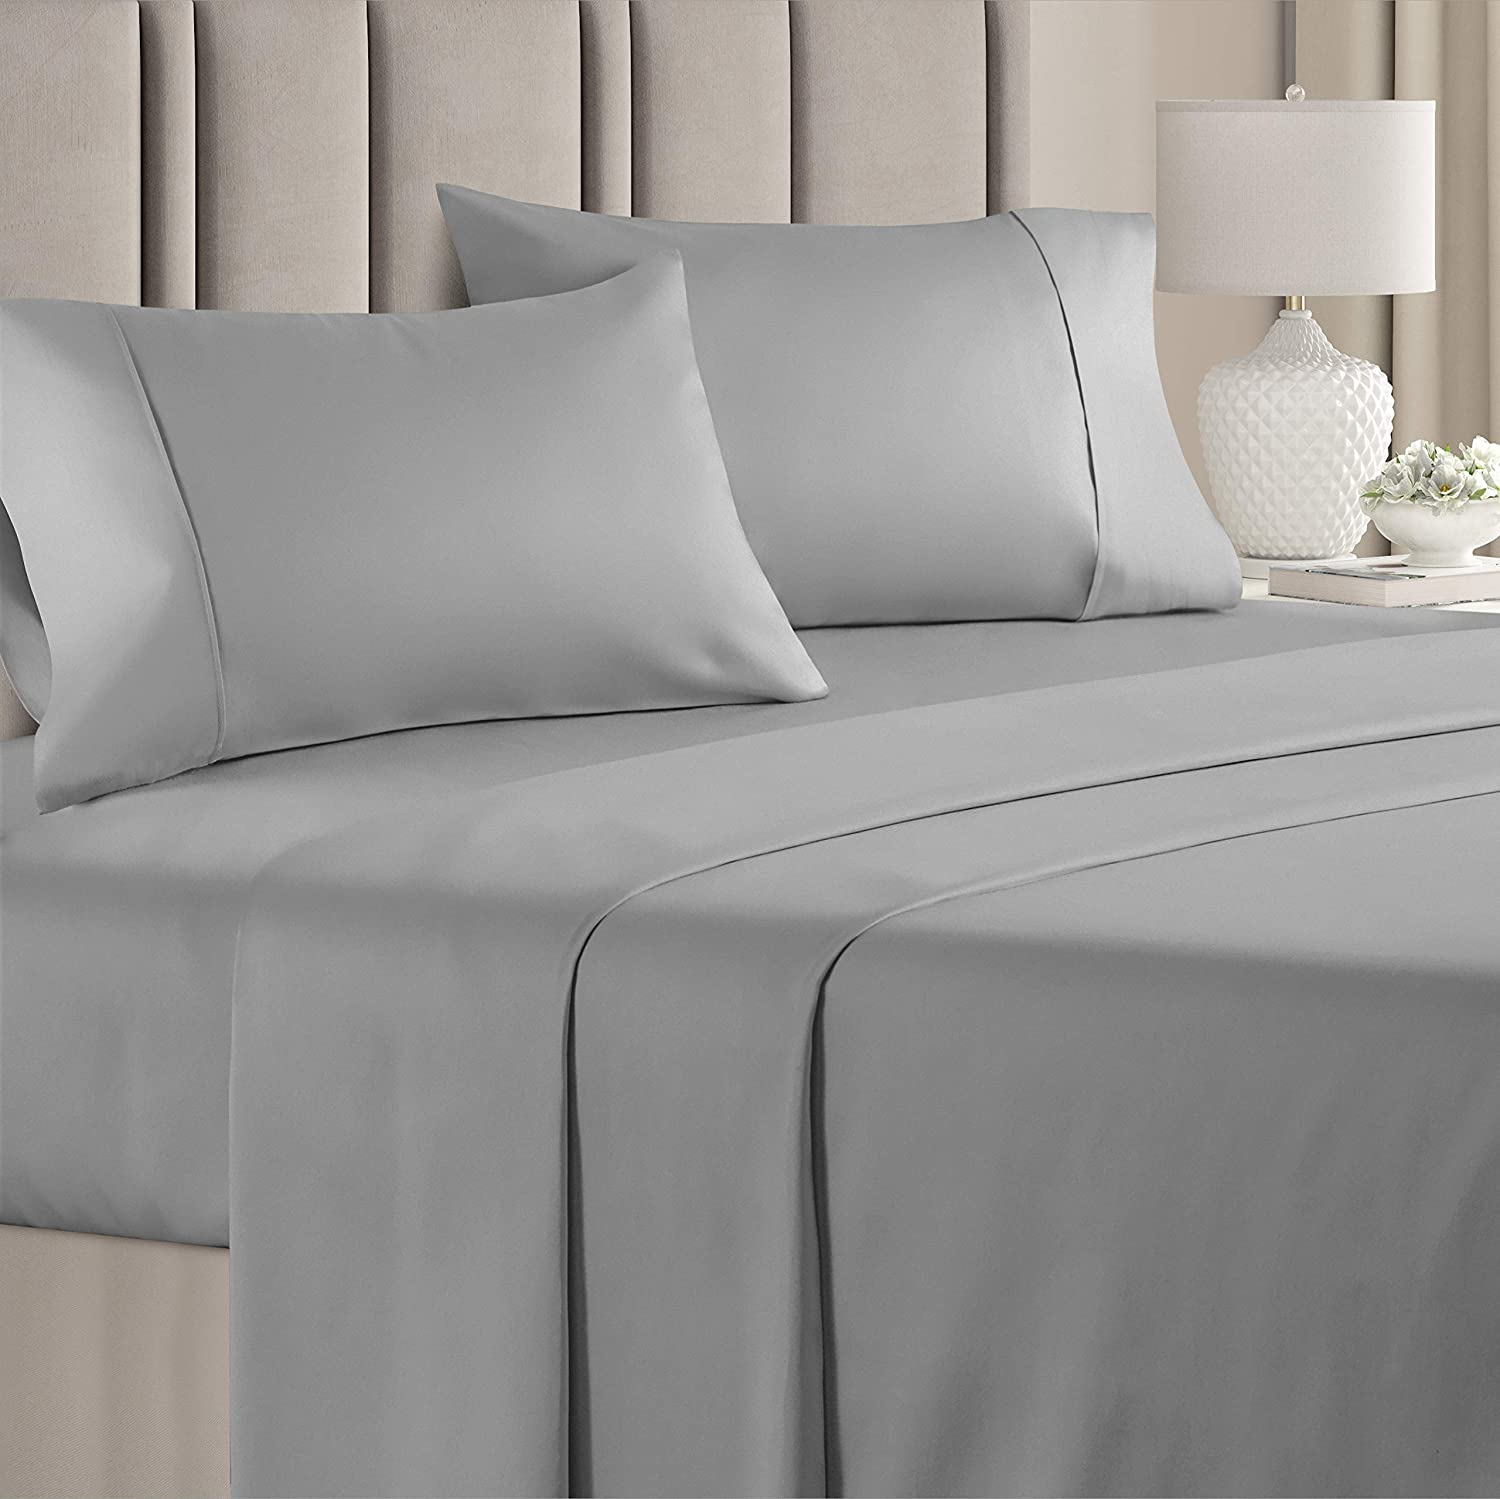 400 Thread Count Cotton - King Classic Set Size At the price of surprise Shee Sheet 100%